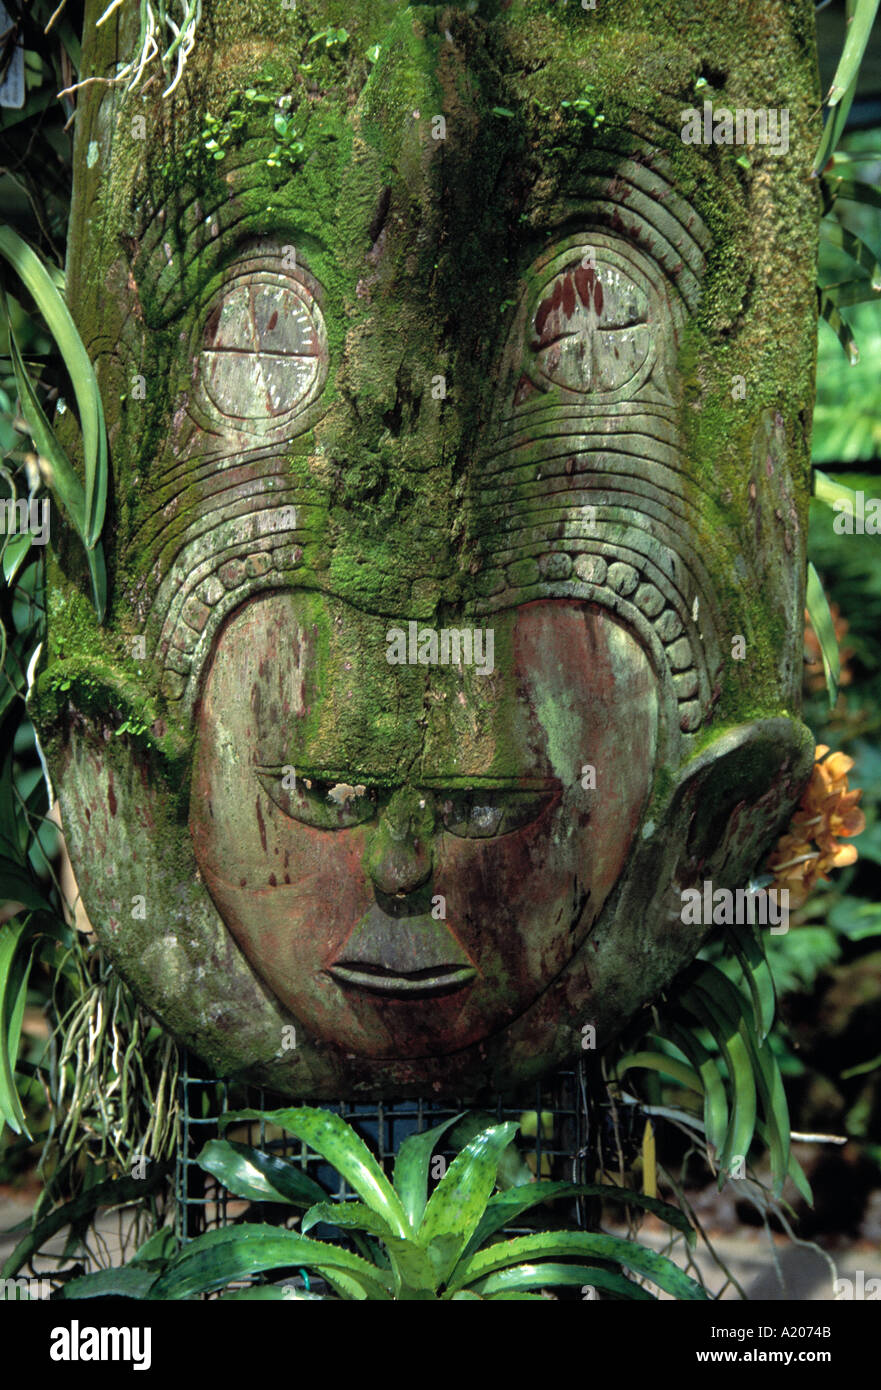 Traditional carving of a Bhuddha s head at the Botanical Gardens - Stock Image